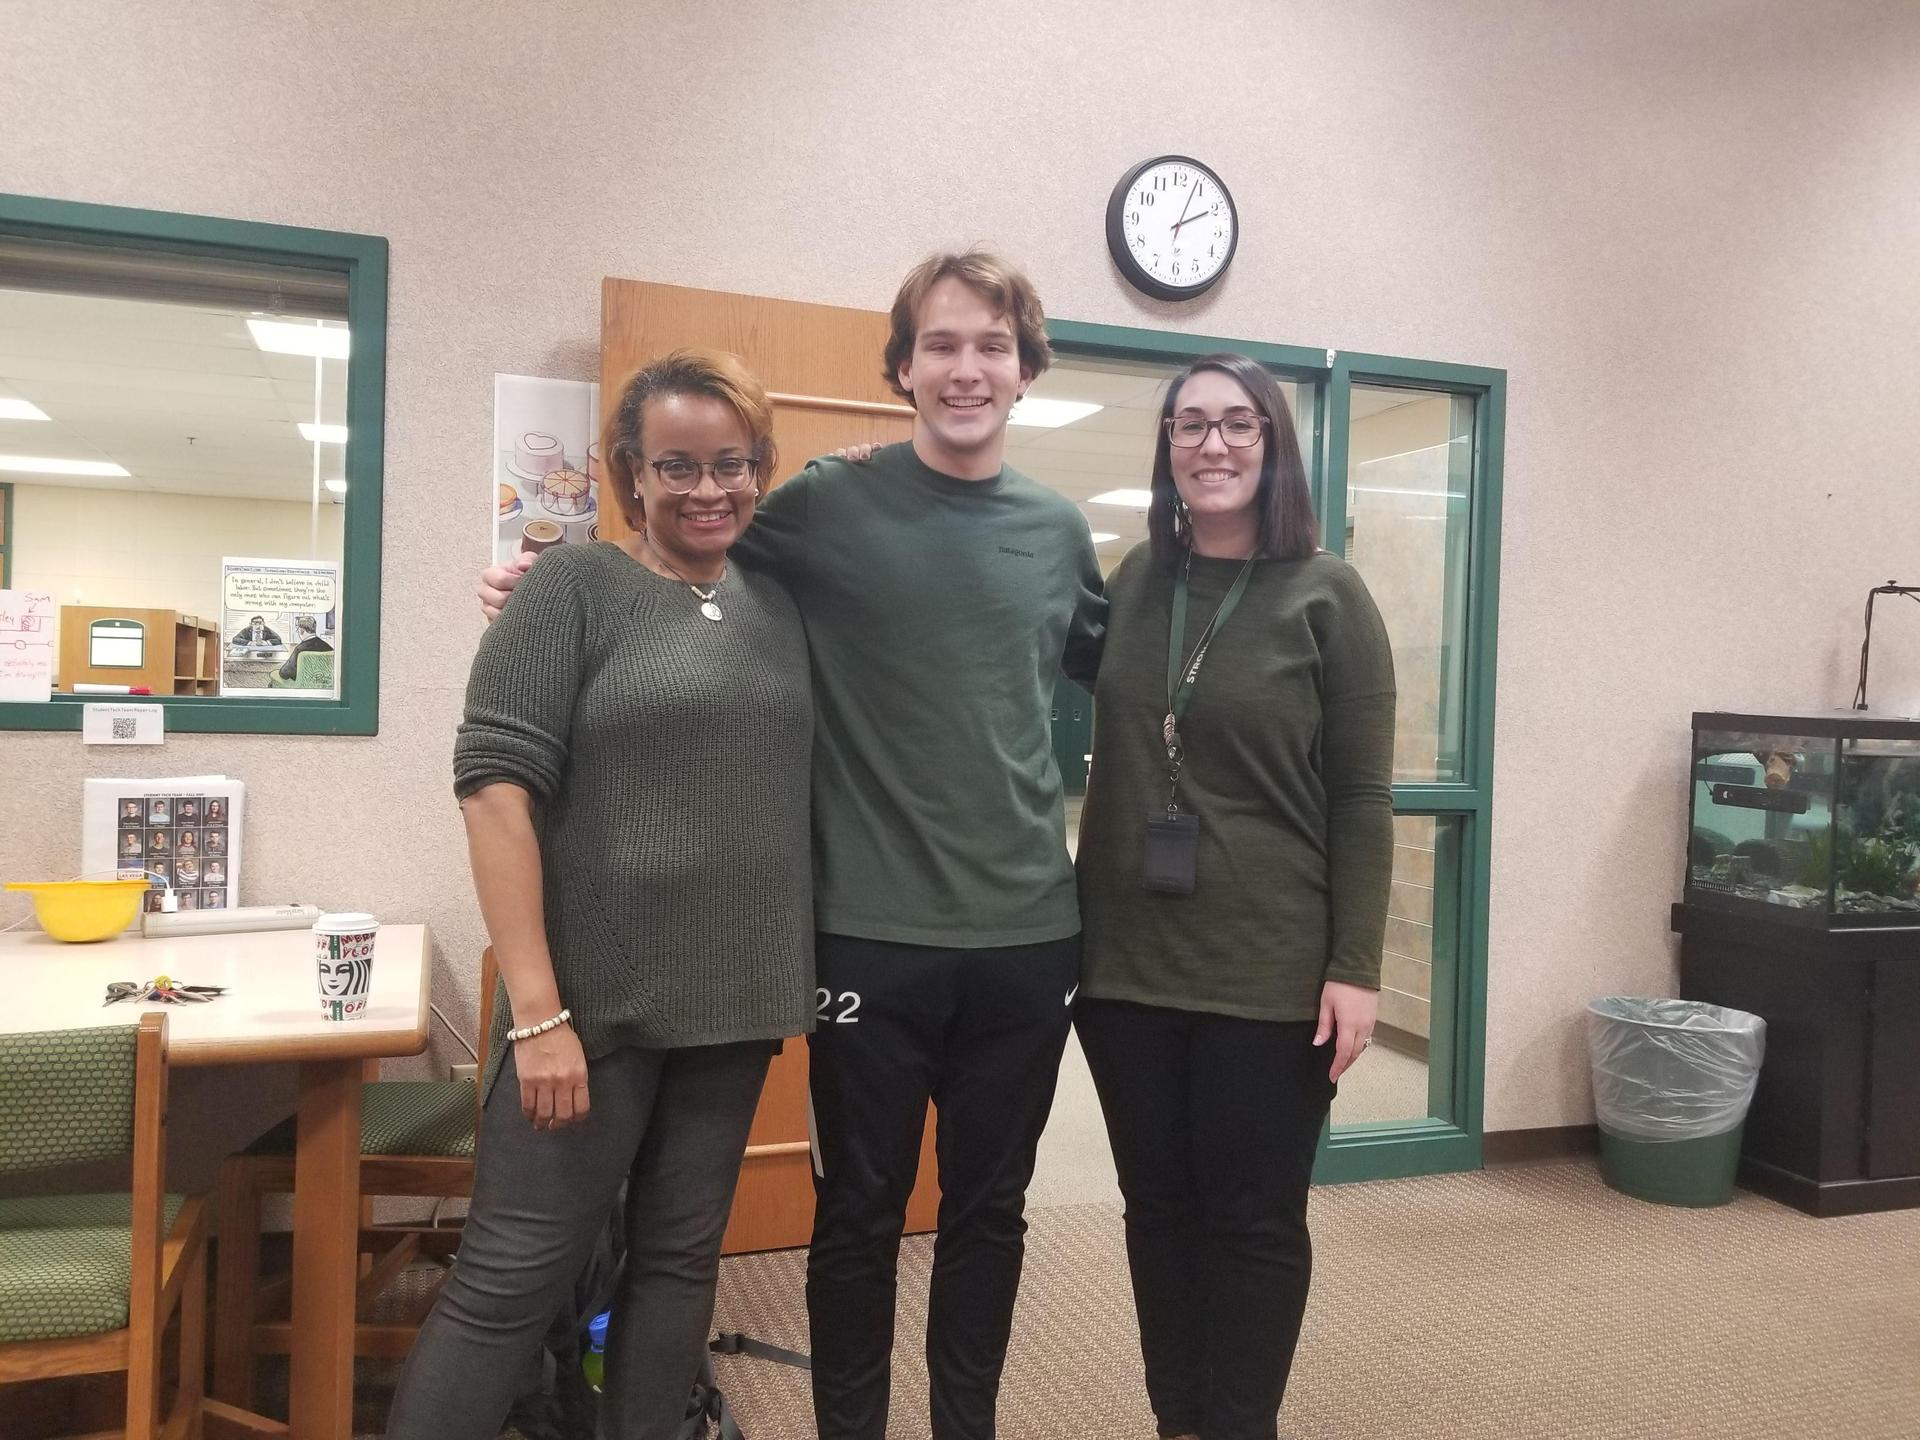 Two teachers posing with a student. All three are wearing green.